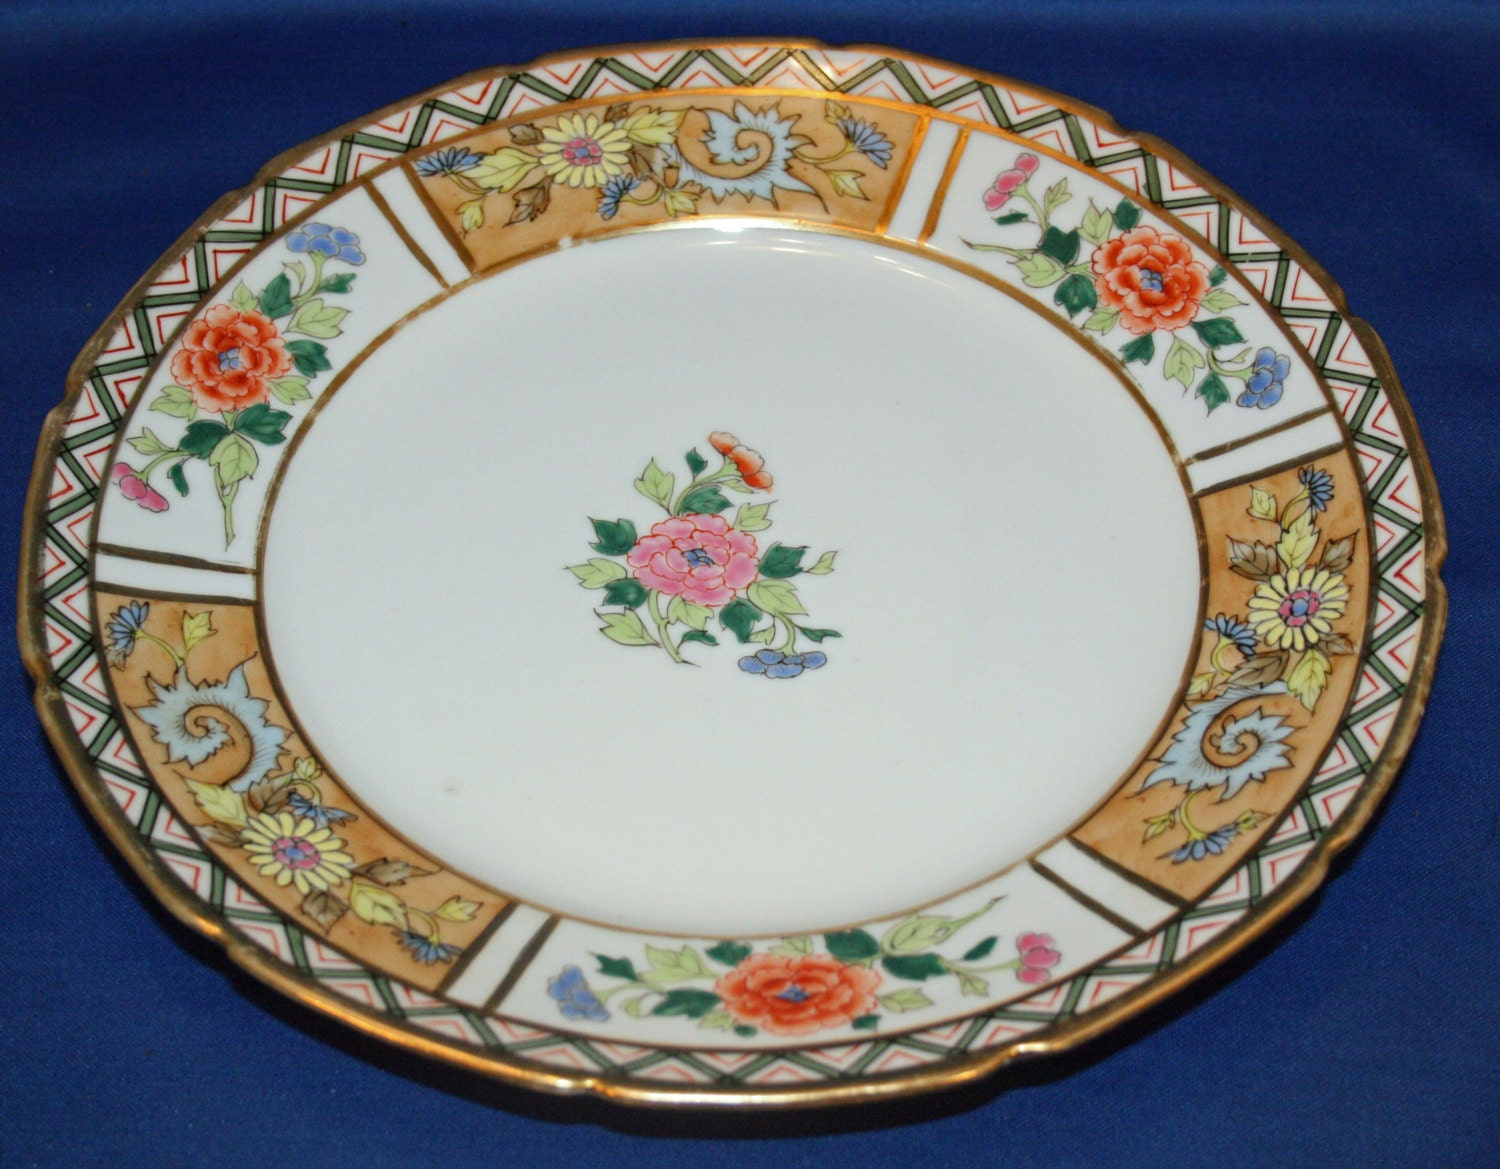 Antique Plate Charger Brothers Noritake Hand Painted 10 1/8 Inch Dinner Plate Gold Gilded - Made in Japan Cabinet Plate Vintage Collectible & Antique Plate Charger Brothers Noritake Hand Painted 10 1/8 Inch ...